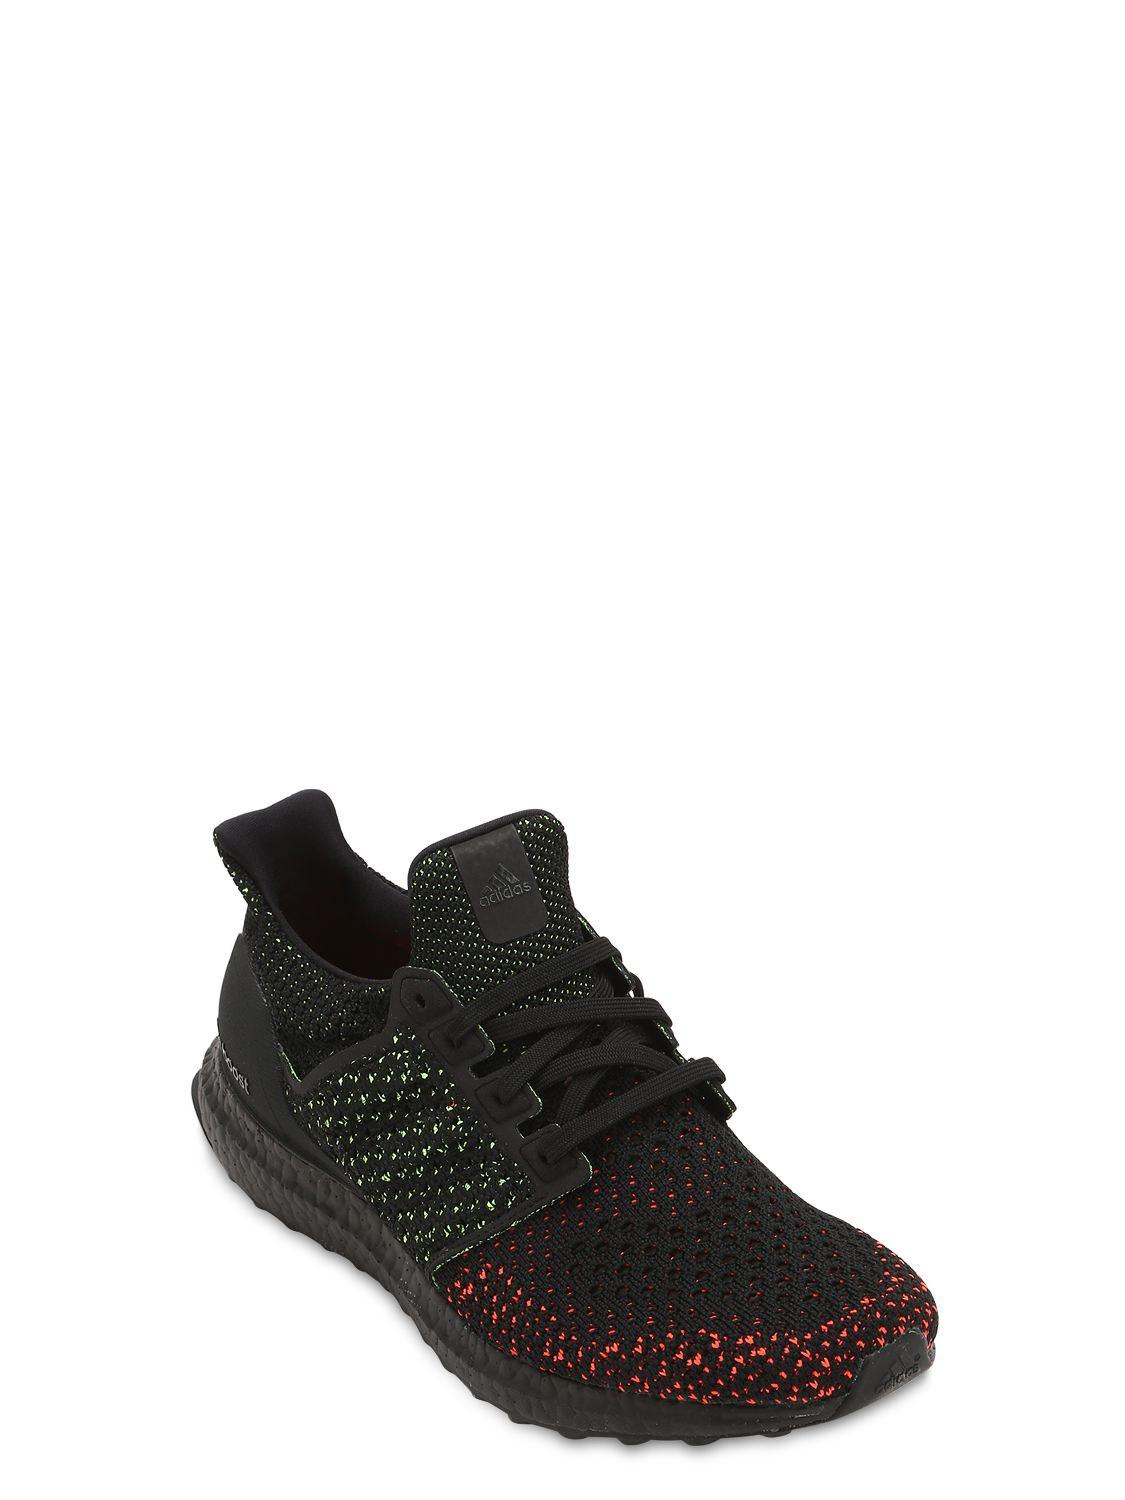 5203ba751 Lyst - adidas Originals Ultraboost Clima Primeknit Sneakers in Black for Men  - Save 63.09963099630996%